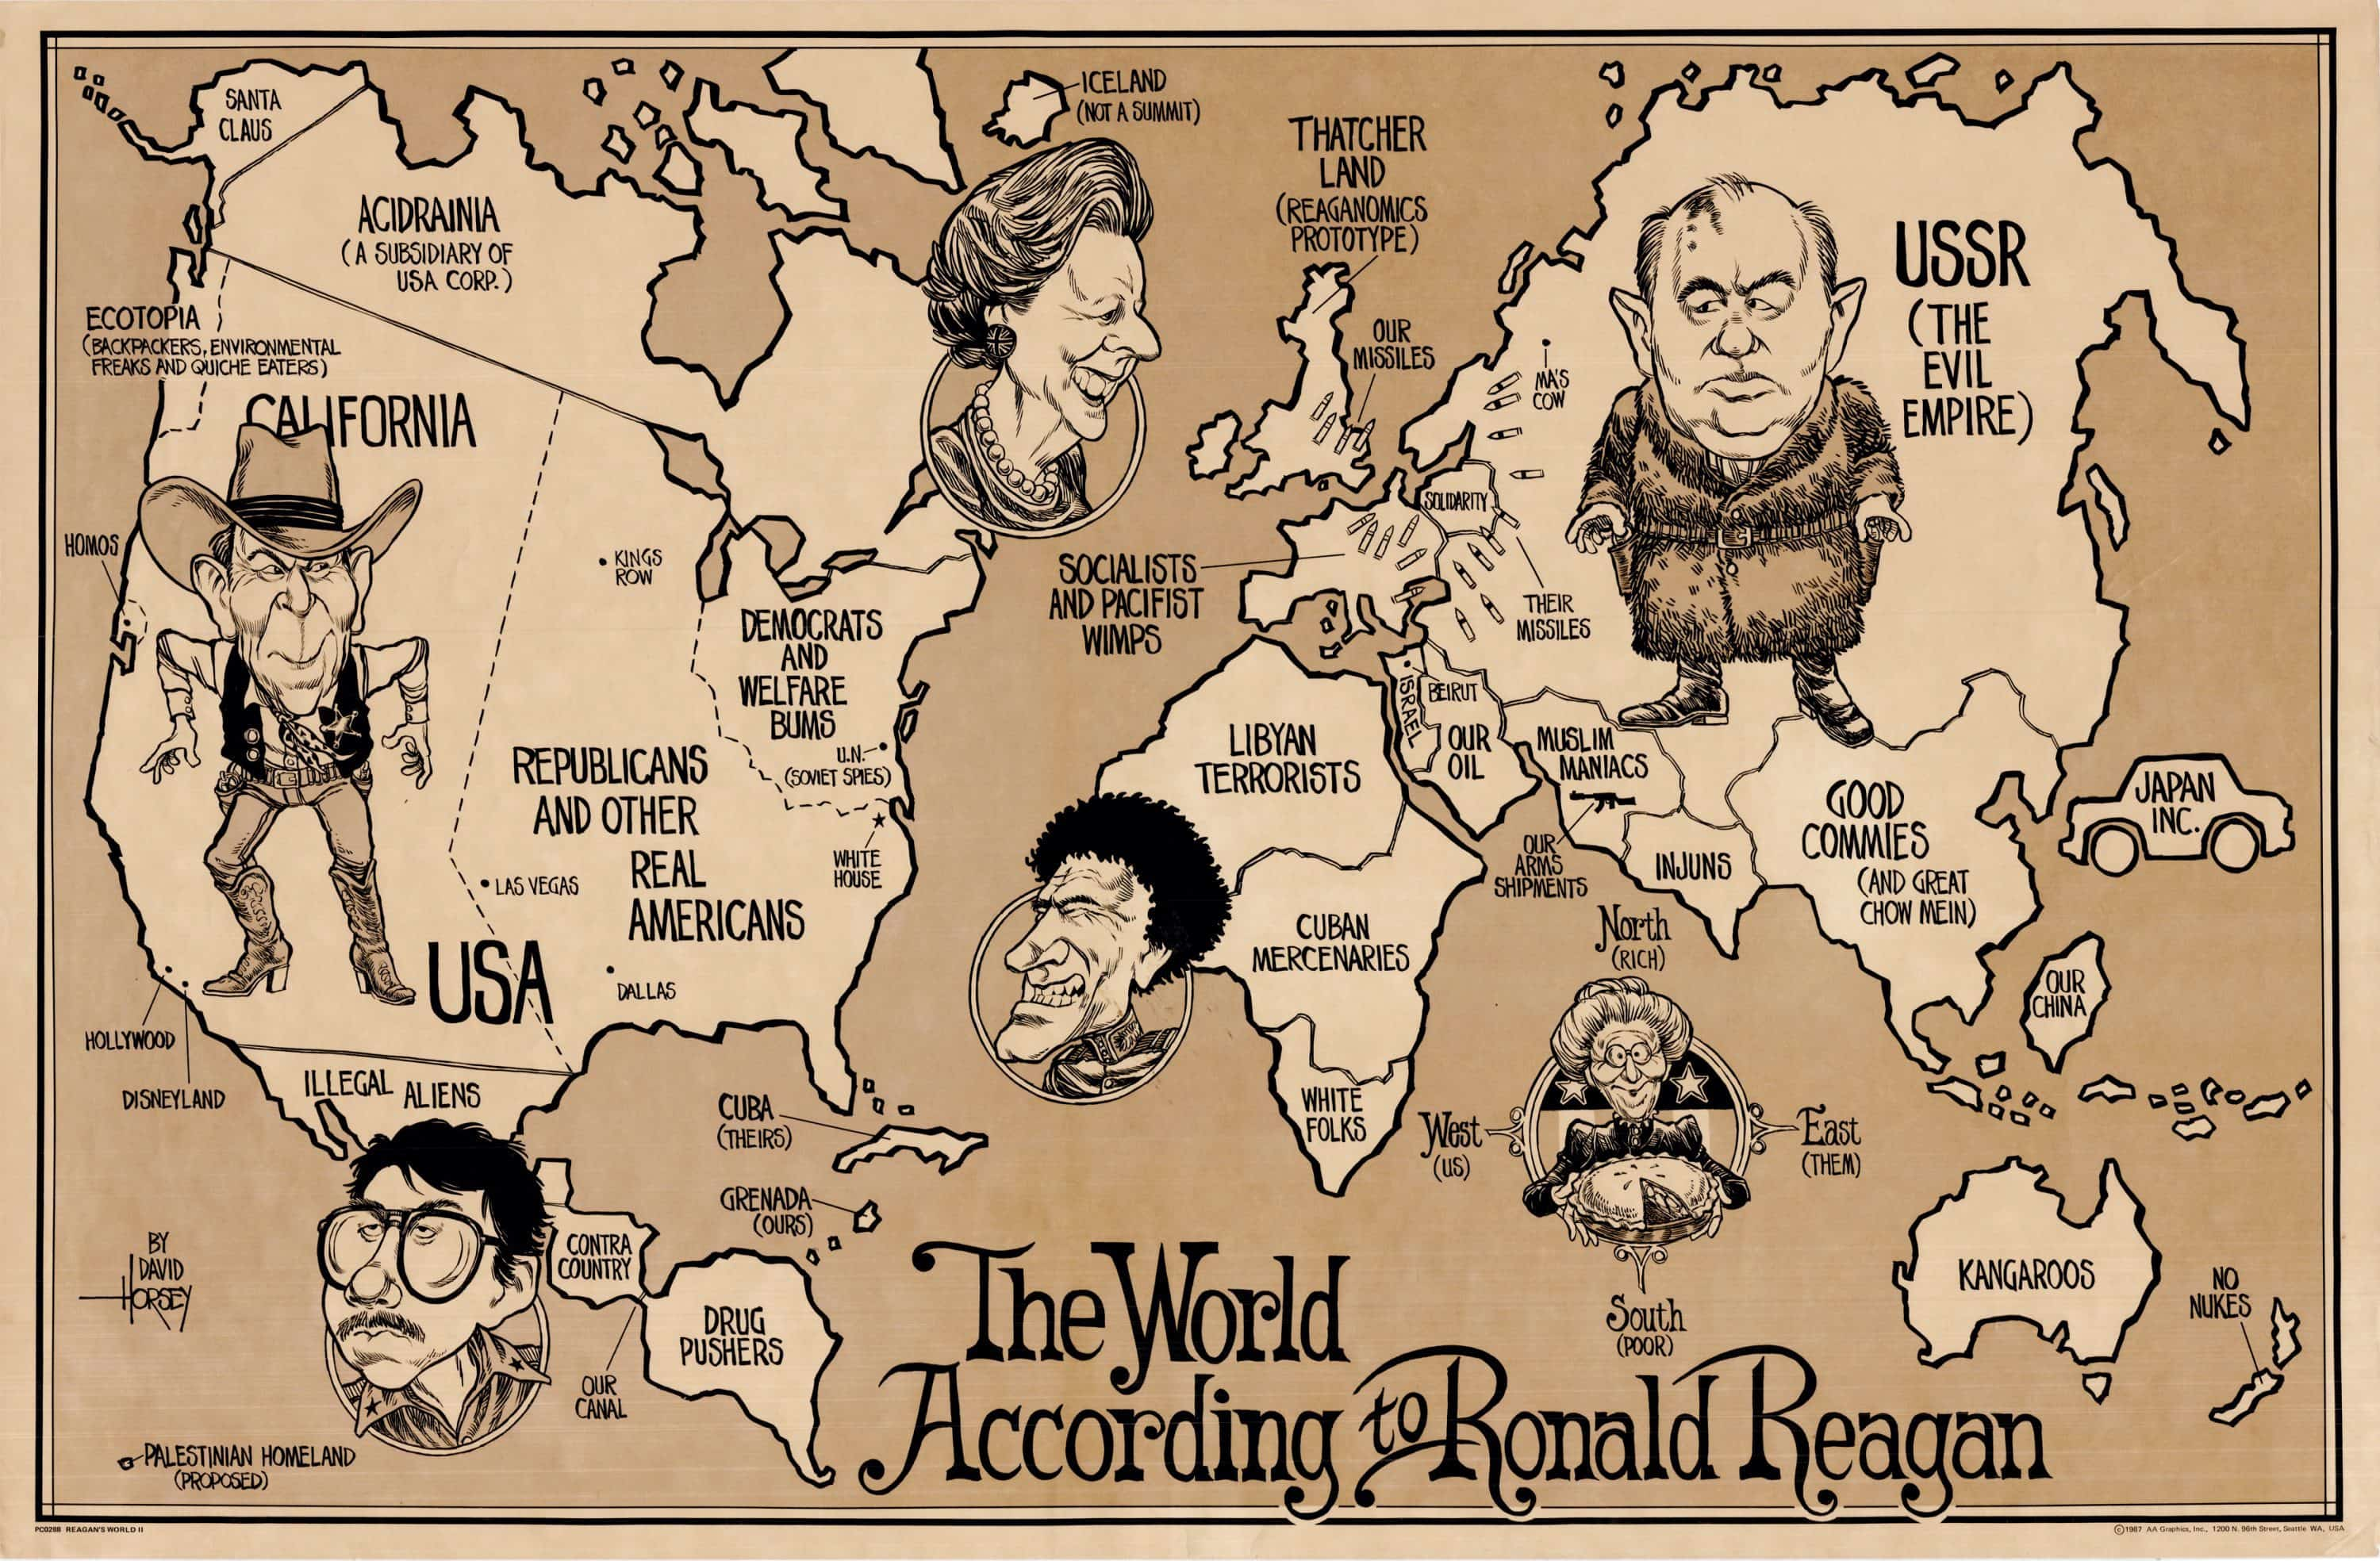 1987 Map Of The World According To Ronald Reagan Rare